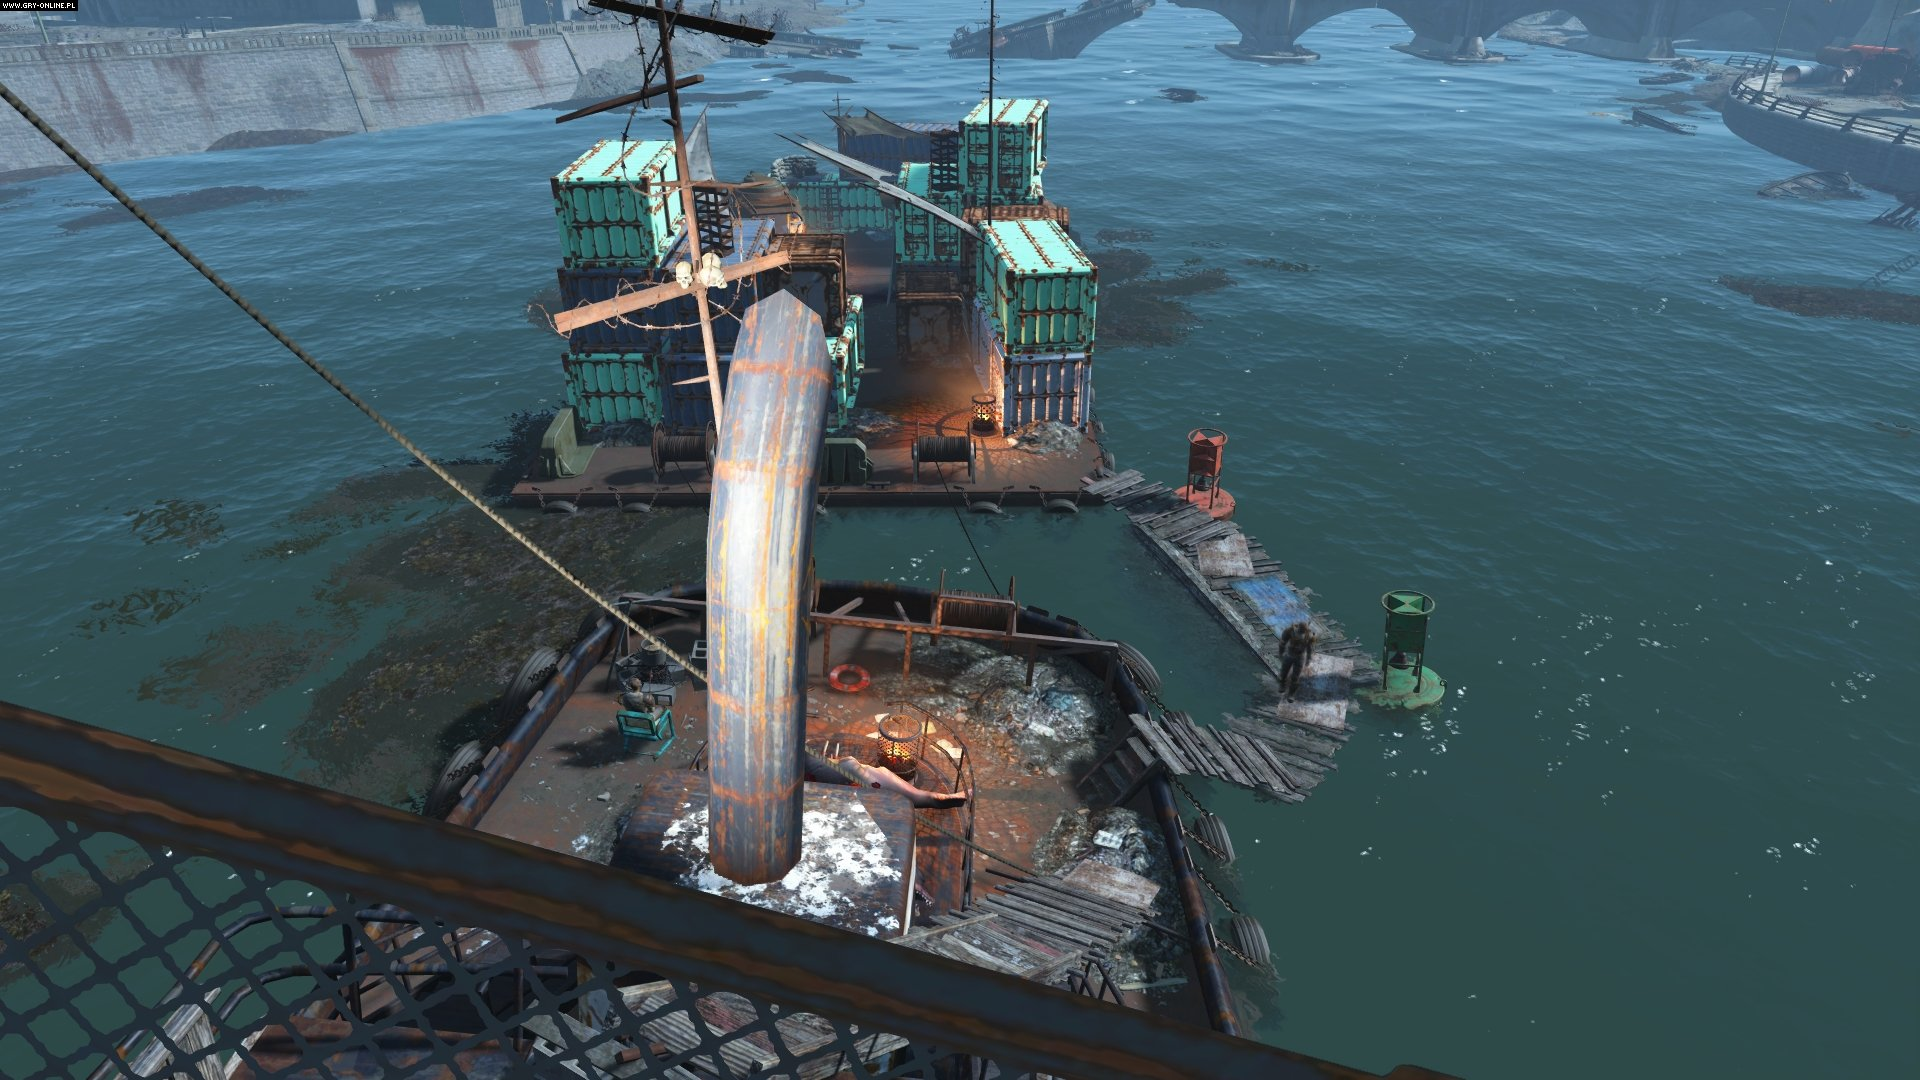 Fallout 4 PC Games Image 5/109, Bethesda Softworks